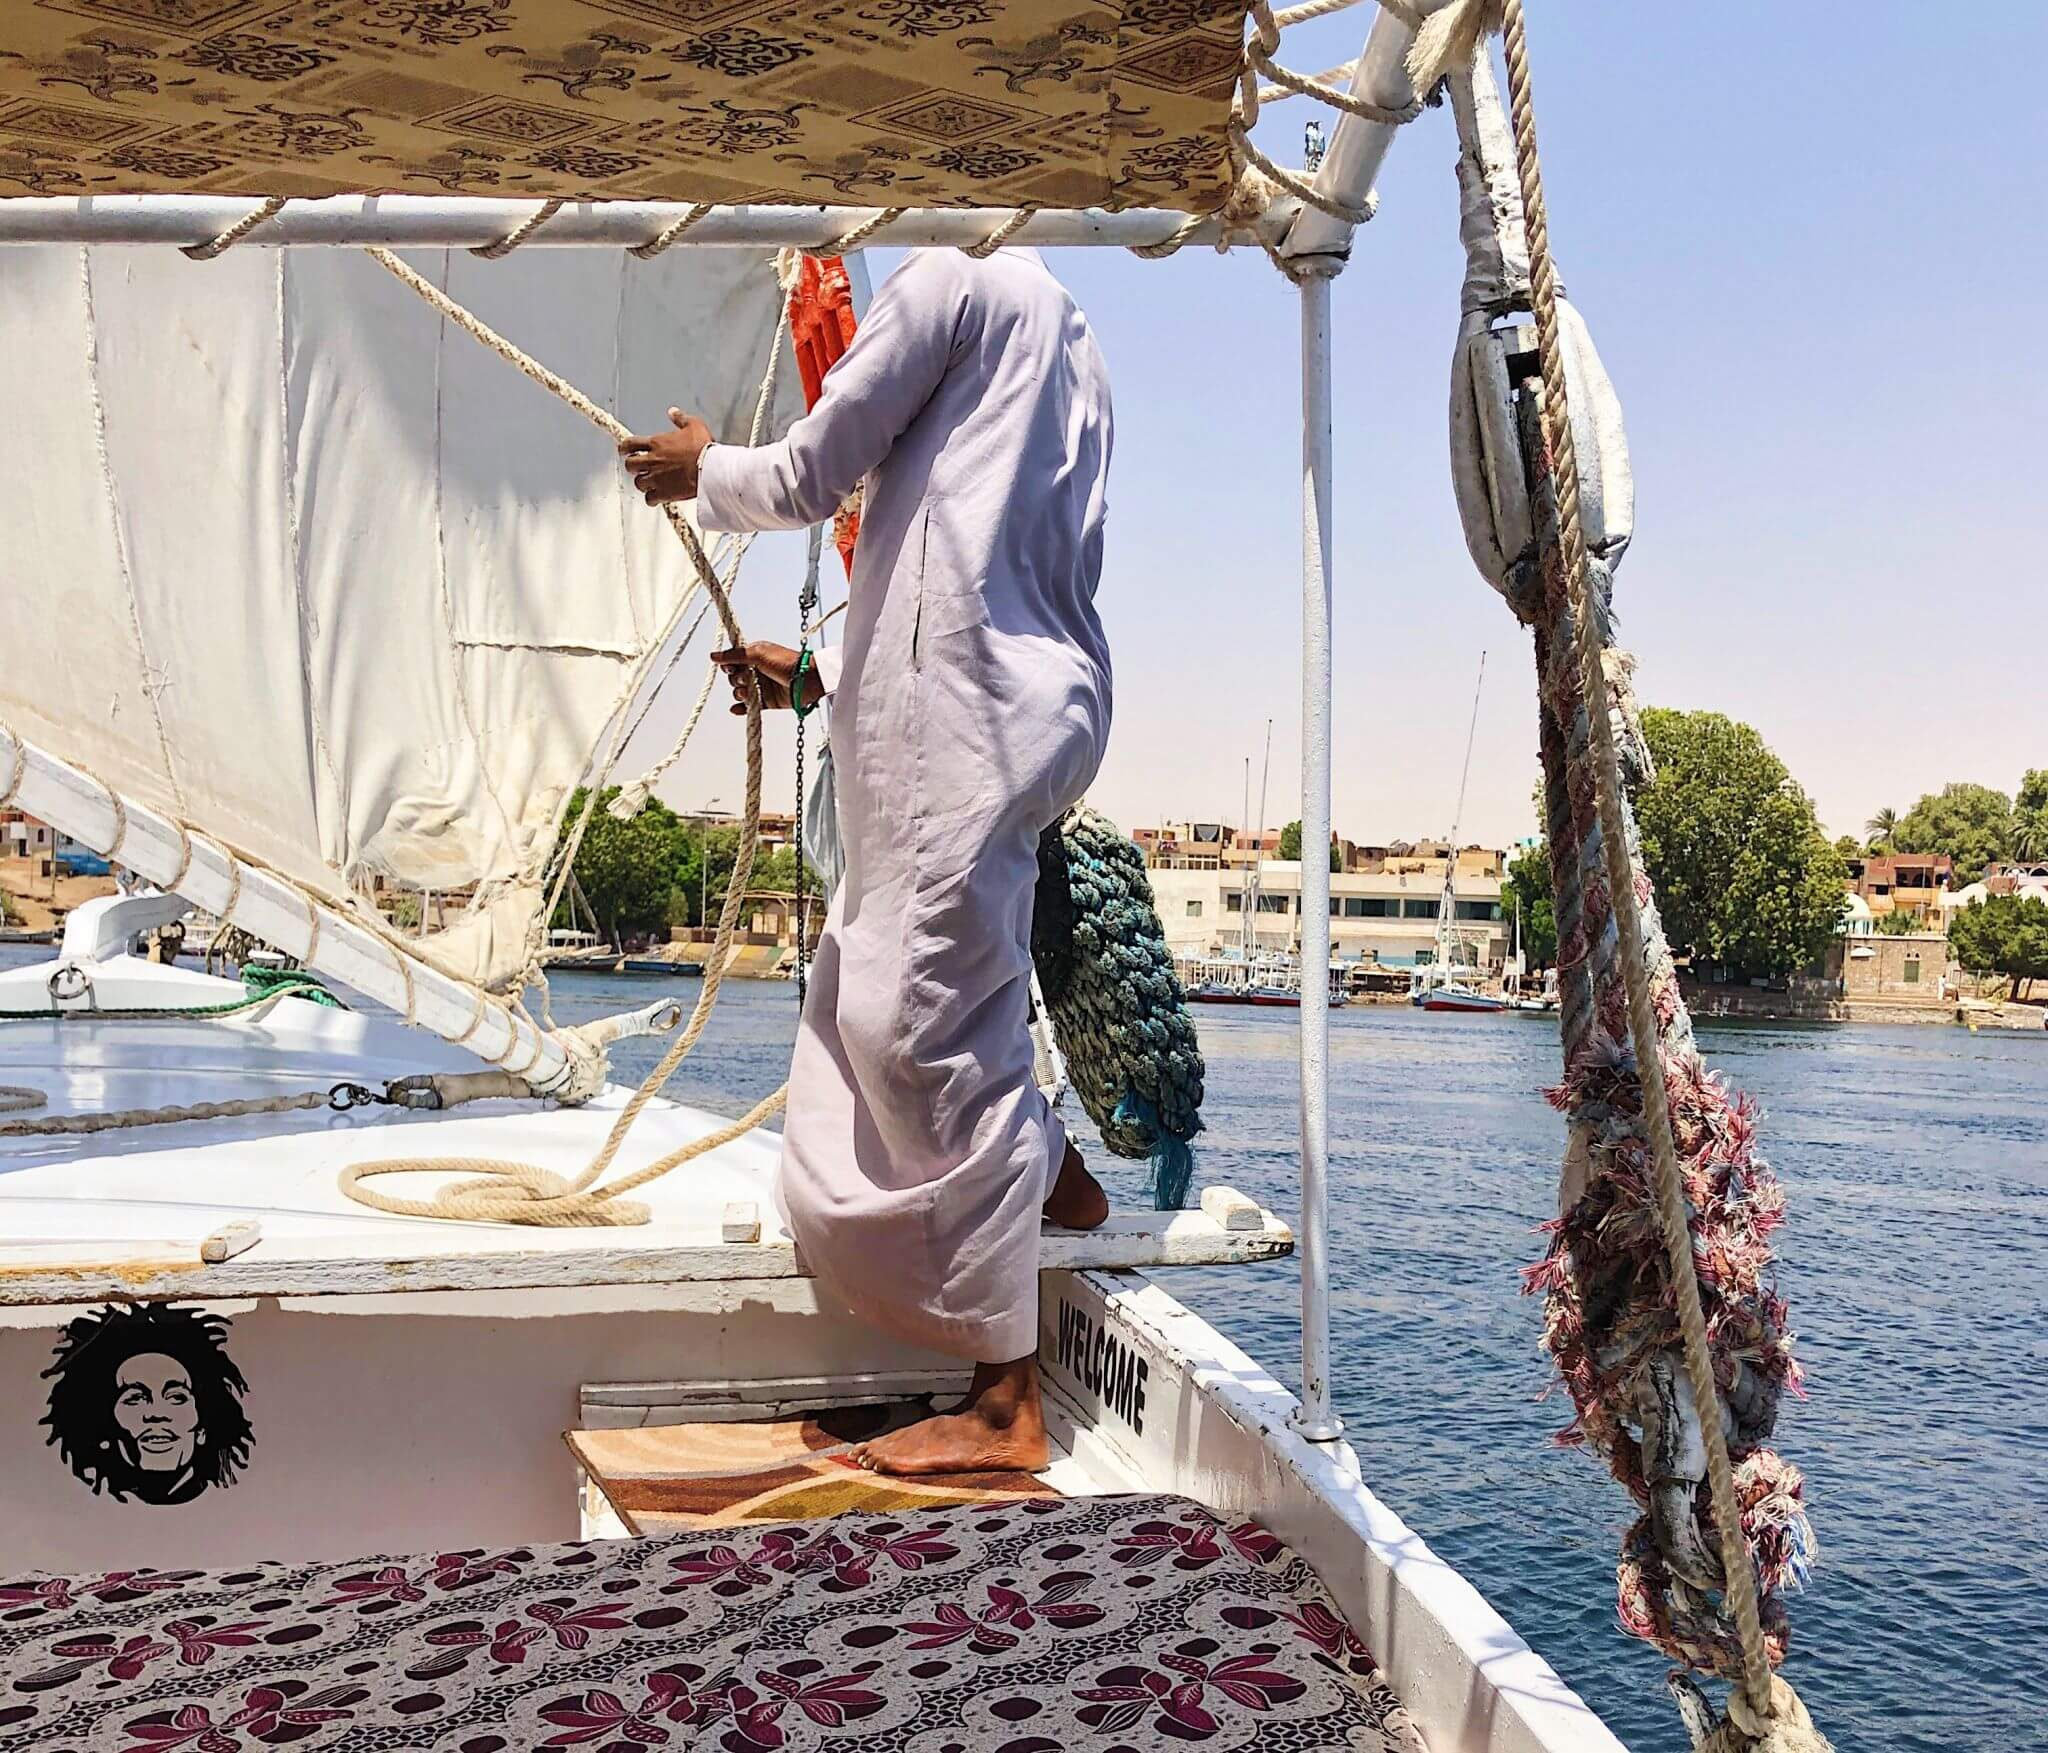 image of Nubian sailing a felucca down the Nile